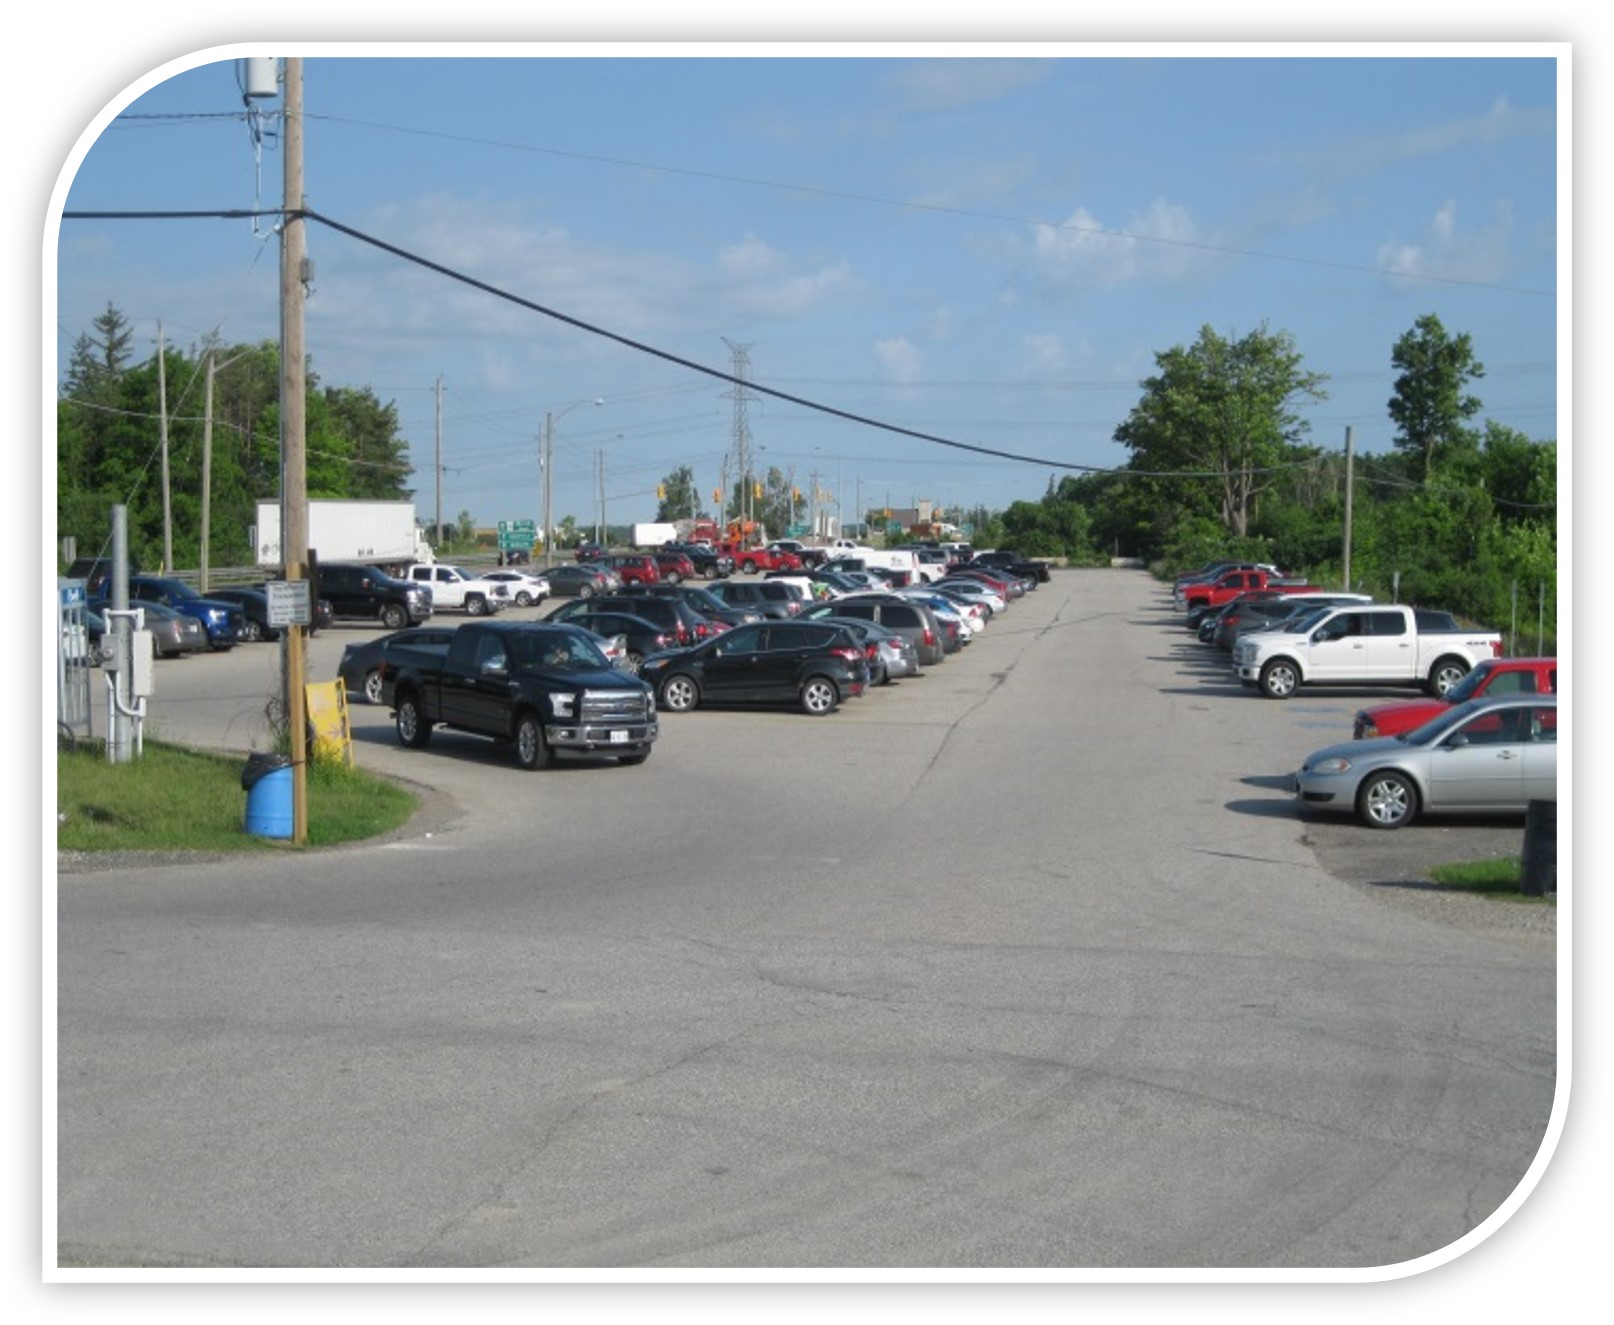 Photos of existing carpool lot on east side of Highway 6 Queen Street, south of Highway 401 in Morriston.